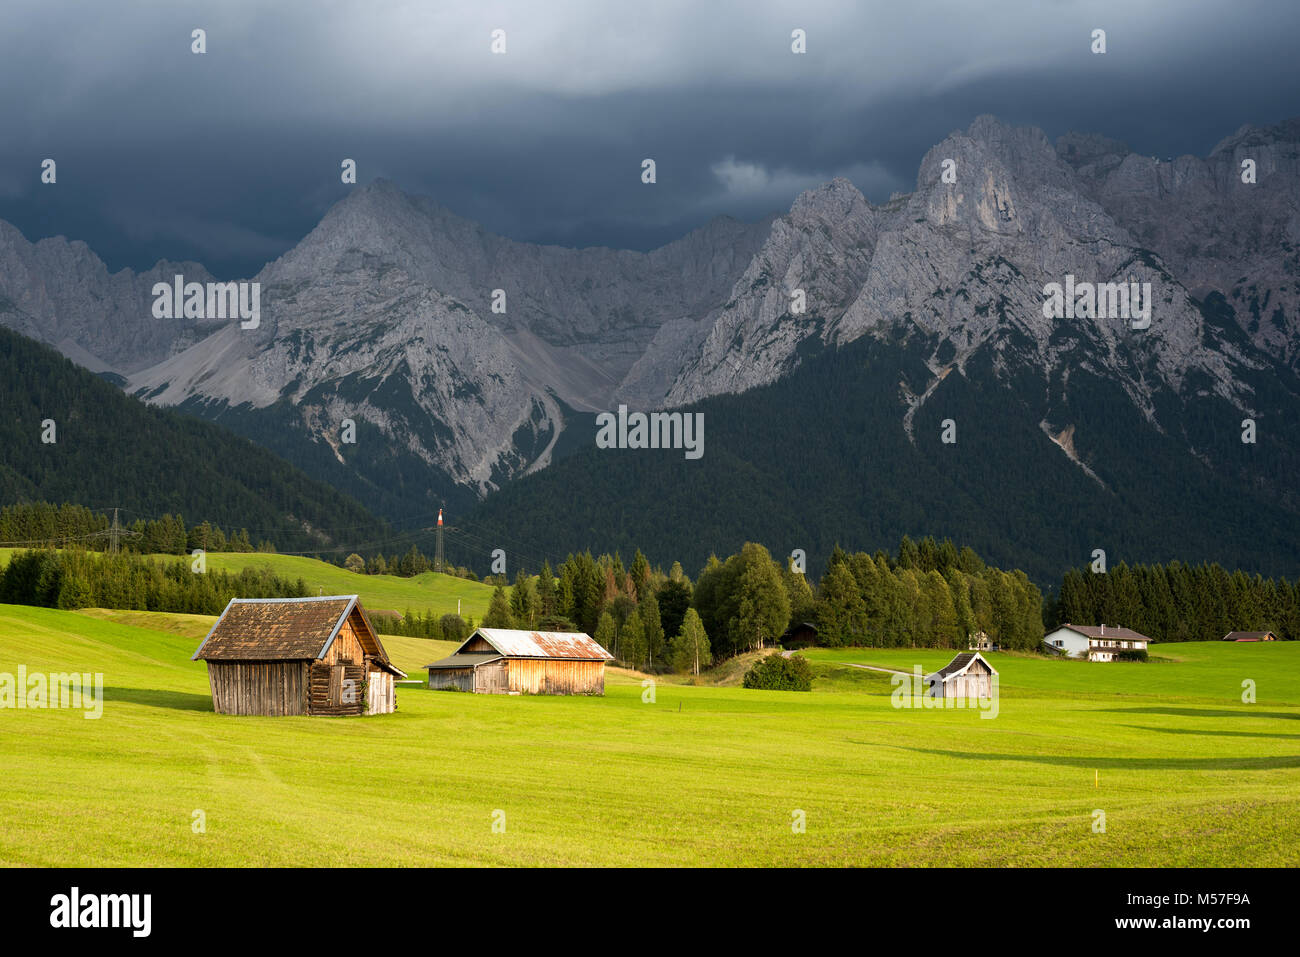 Country houses on green grass against mountain under low cloud - Stock Image